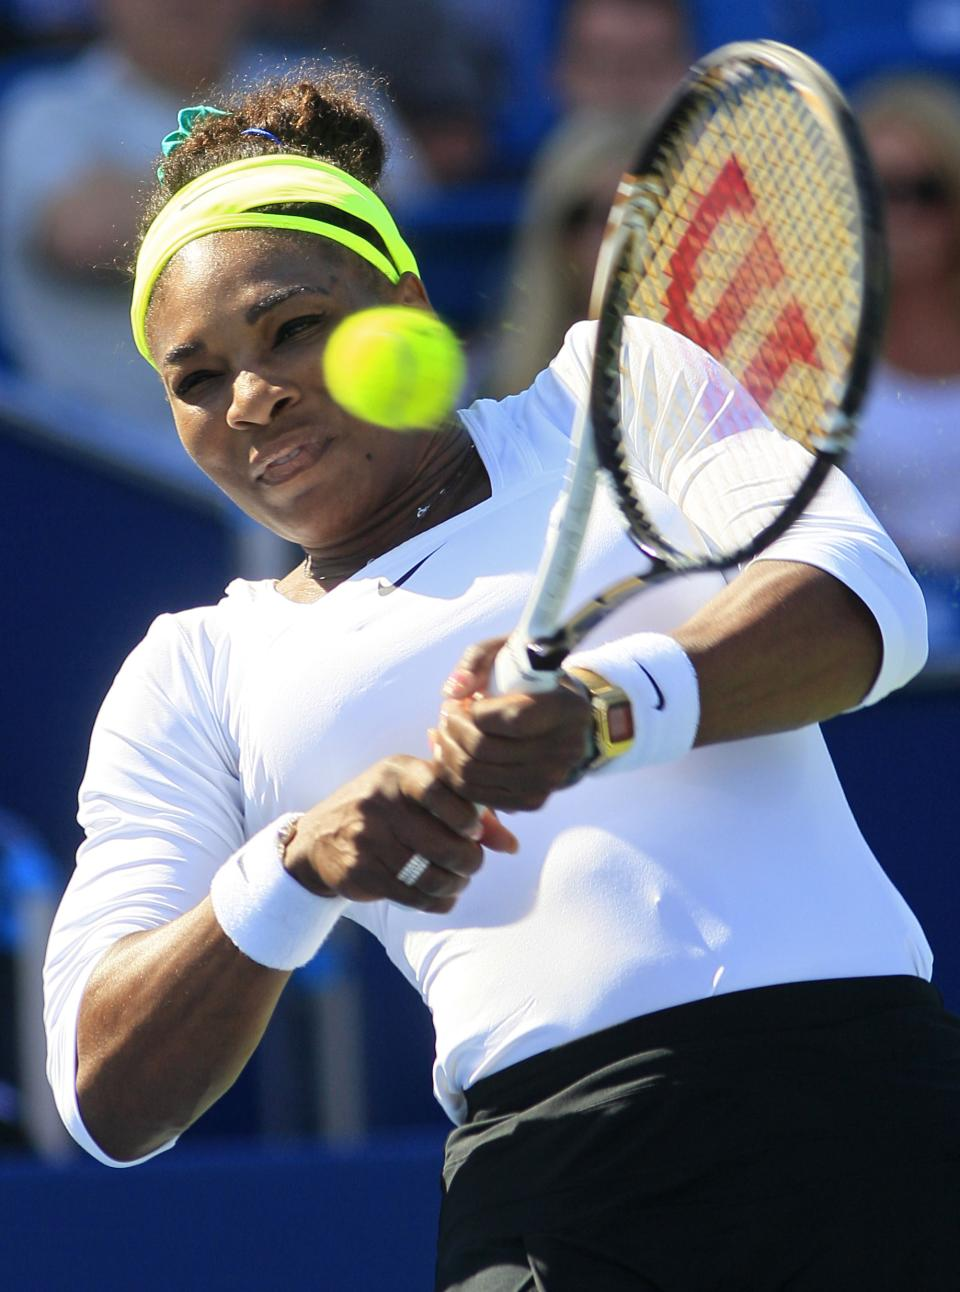 Serena Williams returns a serve against Angelique Kerber, from Germany, during a quarterfinal at the Western & Southern Open tennis tournament on Friday, Aug. 17, 2012, in Mason, Ohio. Kerber won 6-4, 6-4. (AP Photo/Al Behrman)